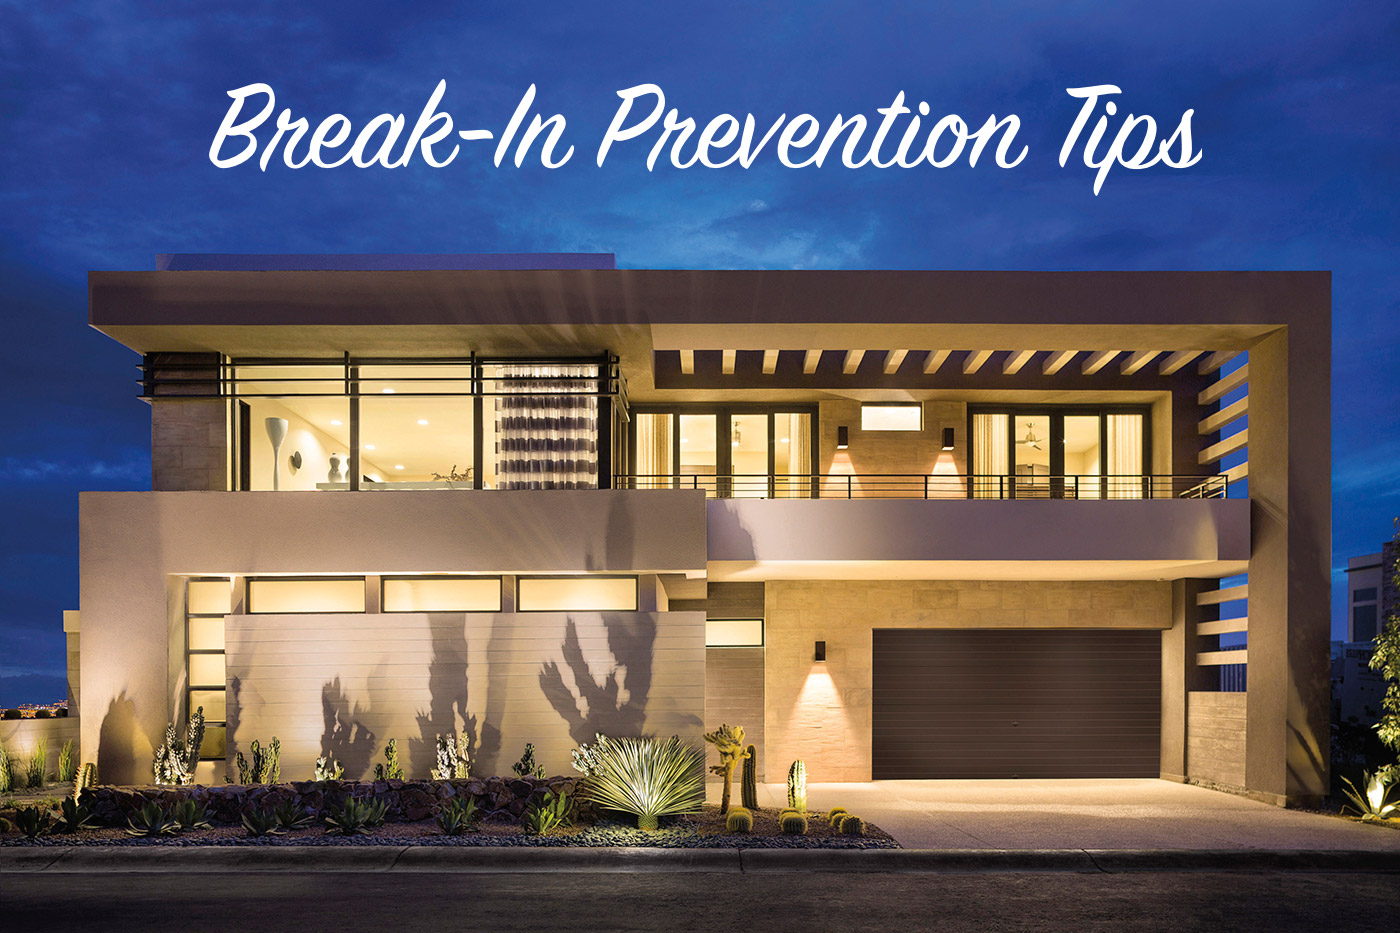 Prevent break-ins through garage door